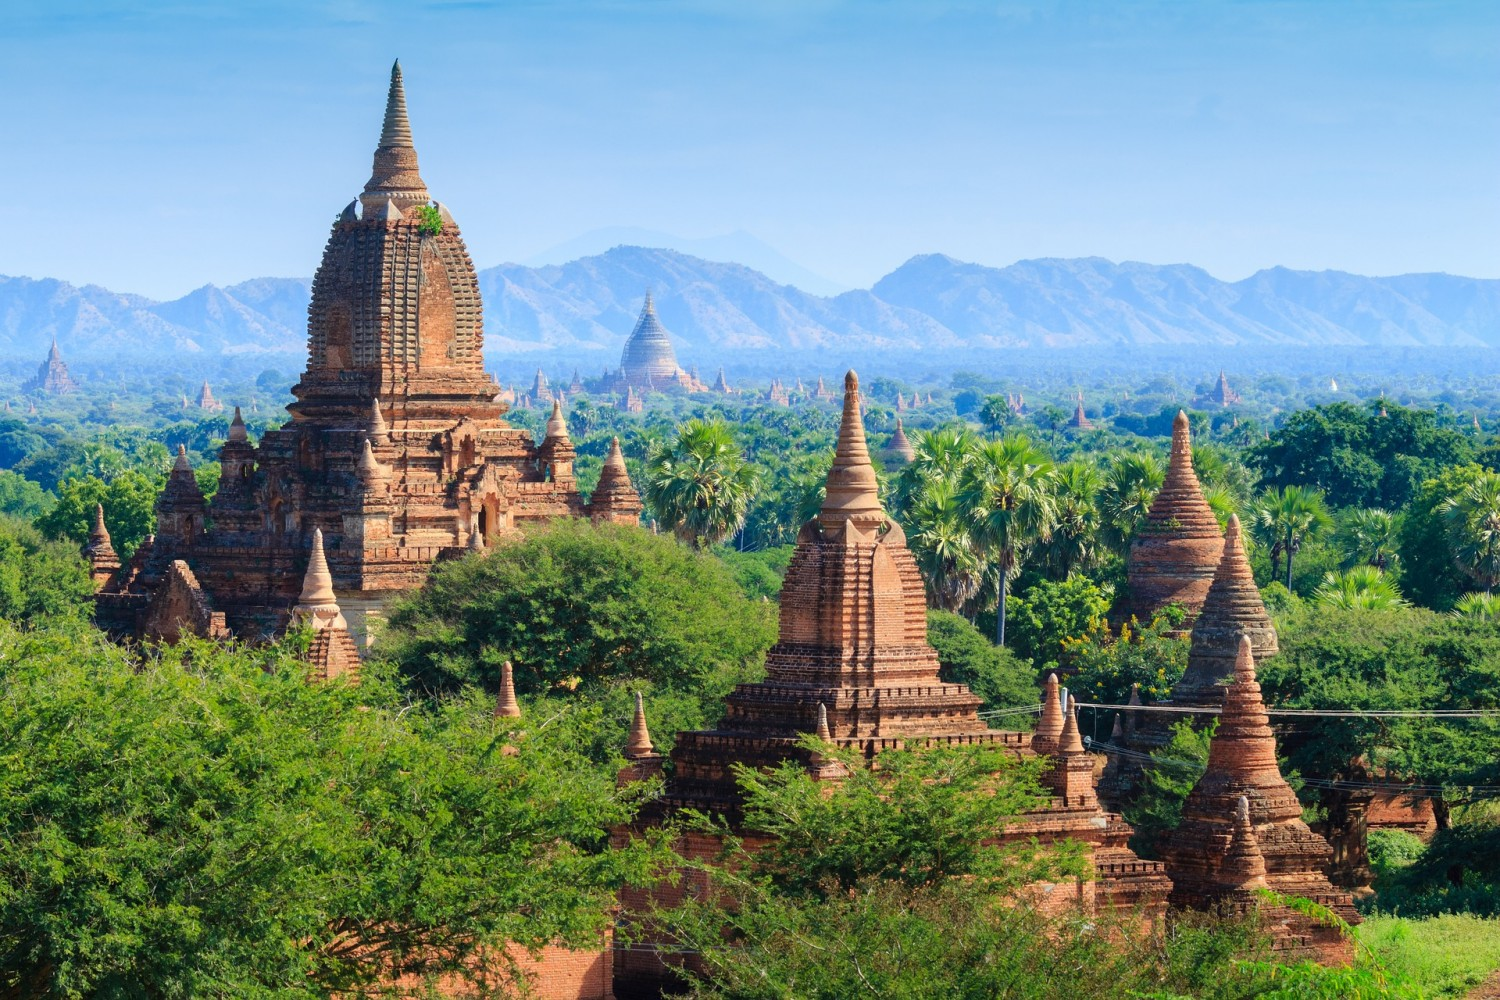 Bagan, Myanmar. Four awesome Southeast Asia travel itineraries I Photography I Itinerary I Landscape I Food I Architecture I Laos I Thailand I Cambodia I Myanmar I Malaysia I Vietnam. Read the full travel guide now #travel #backpacking